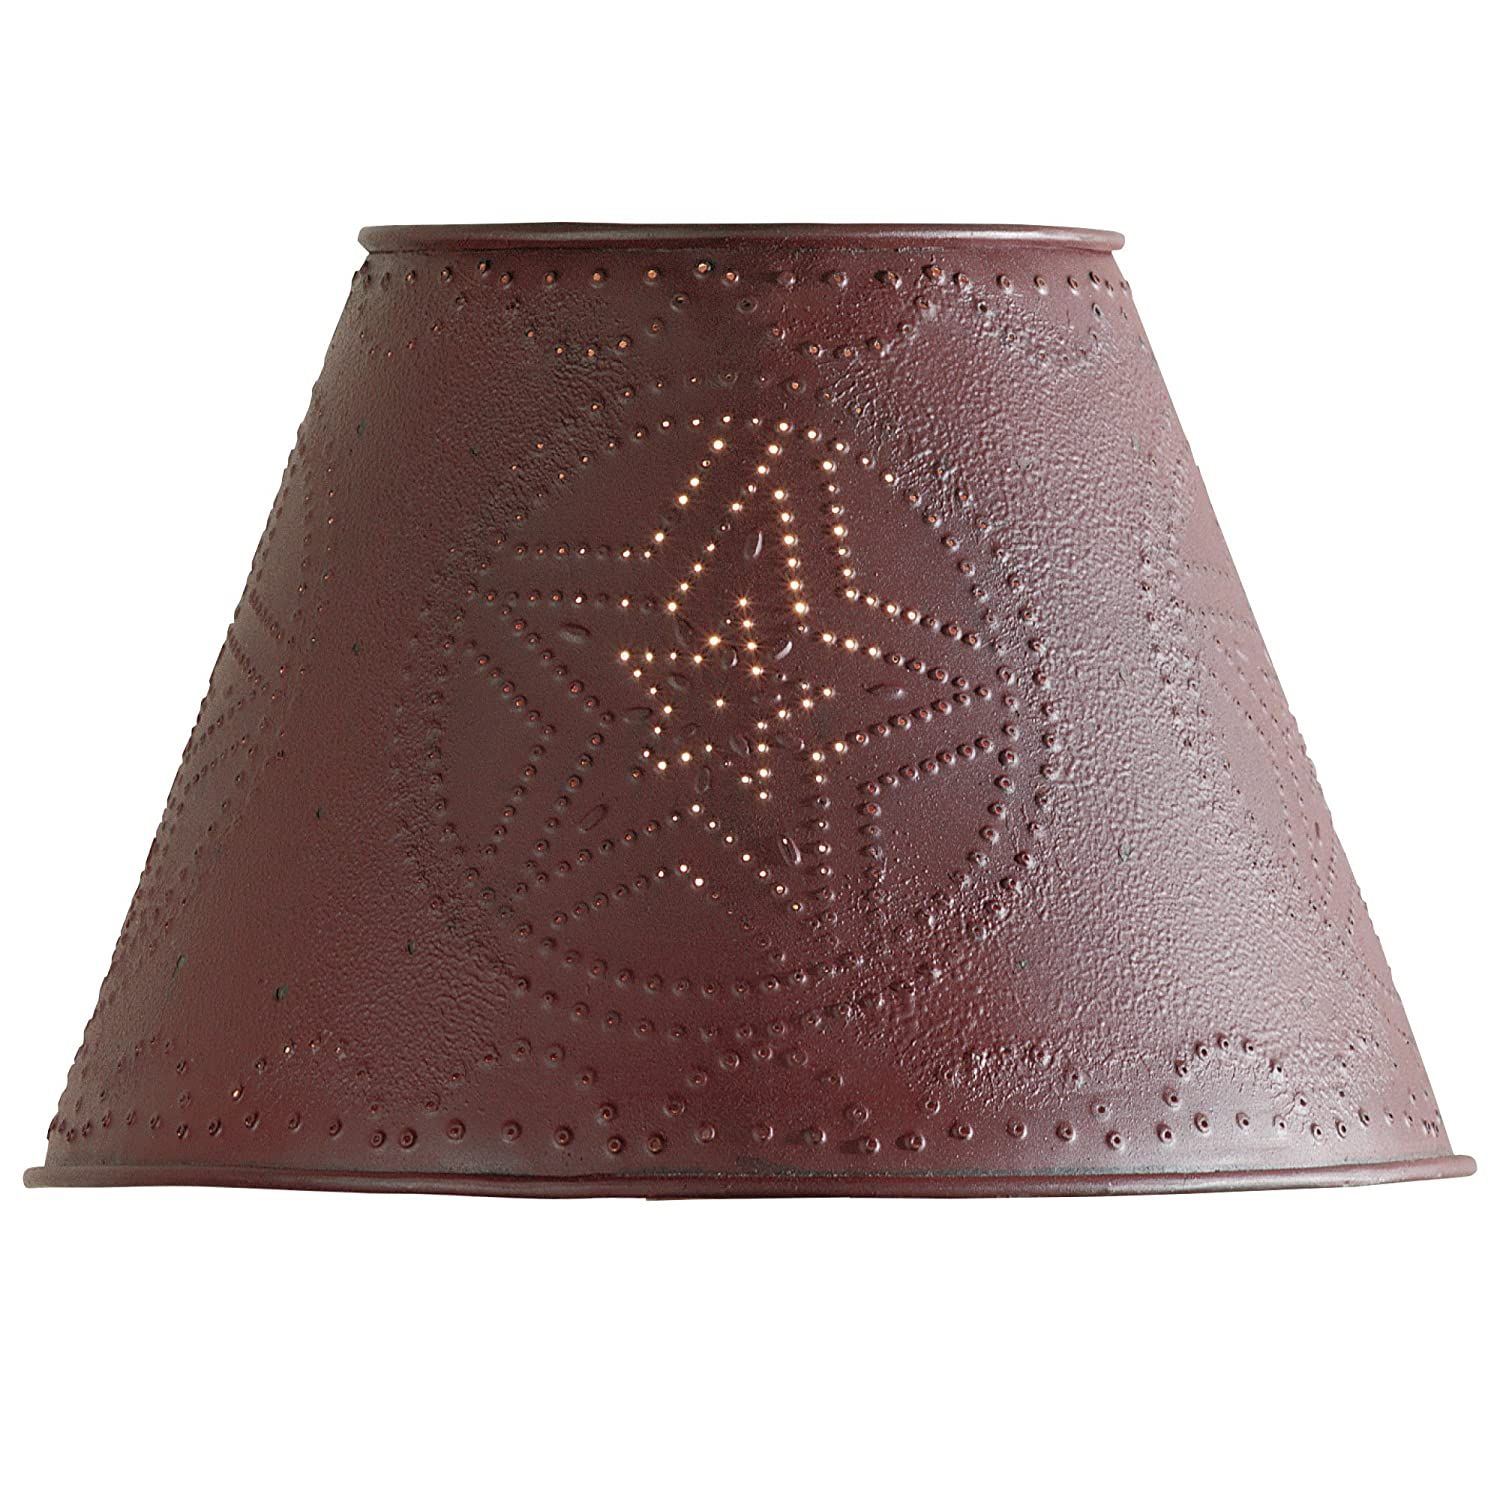 Red star punched tin 12 lamp shade lampshades amazon aloadofball Image collections